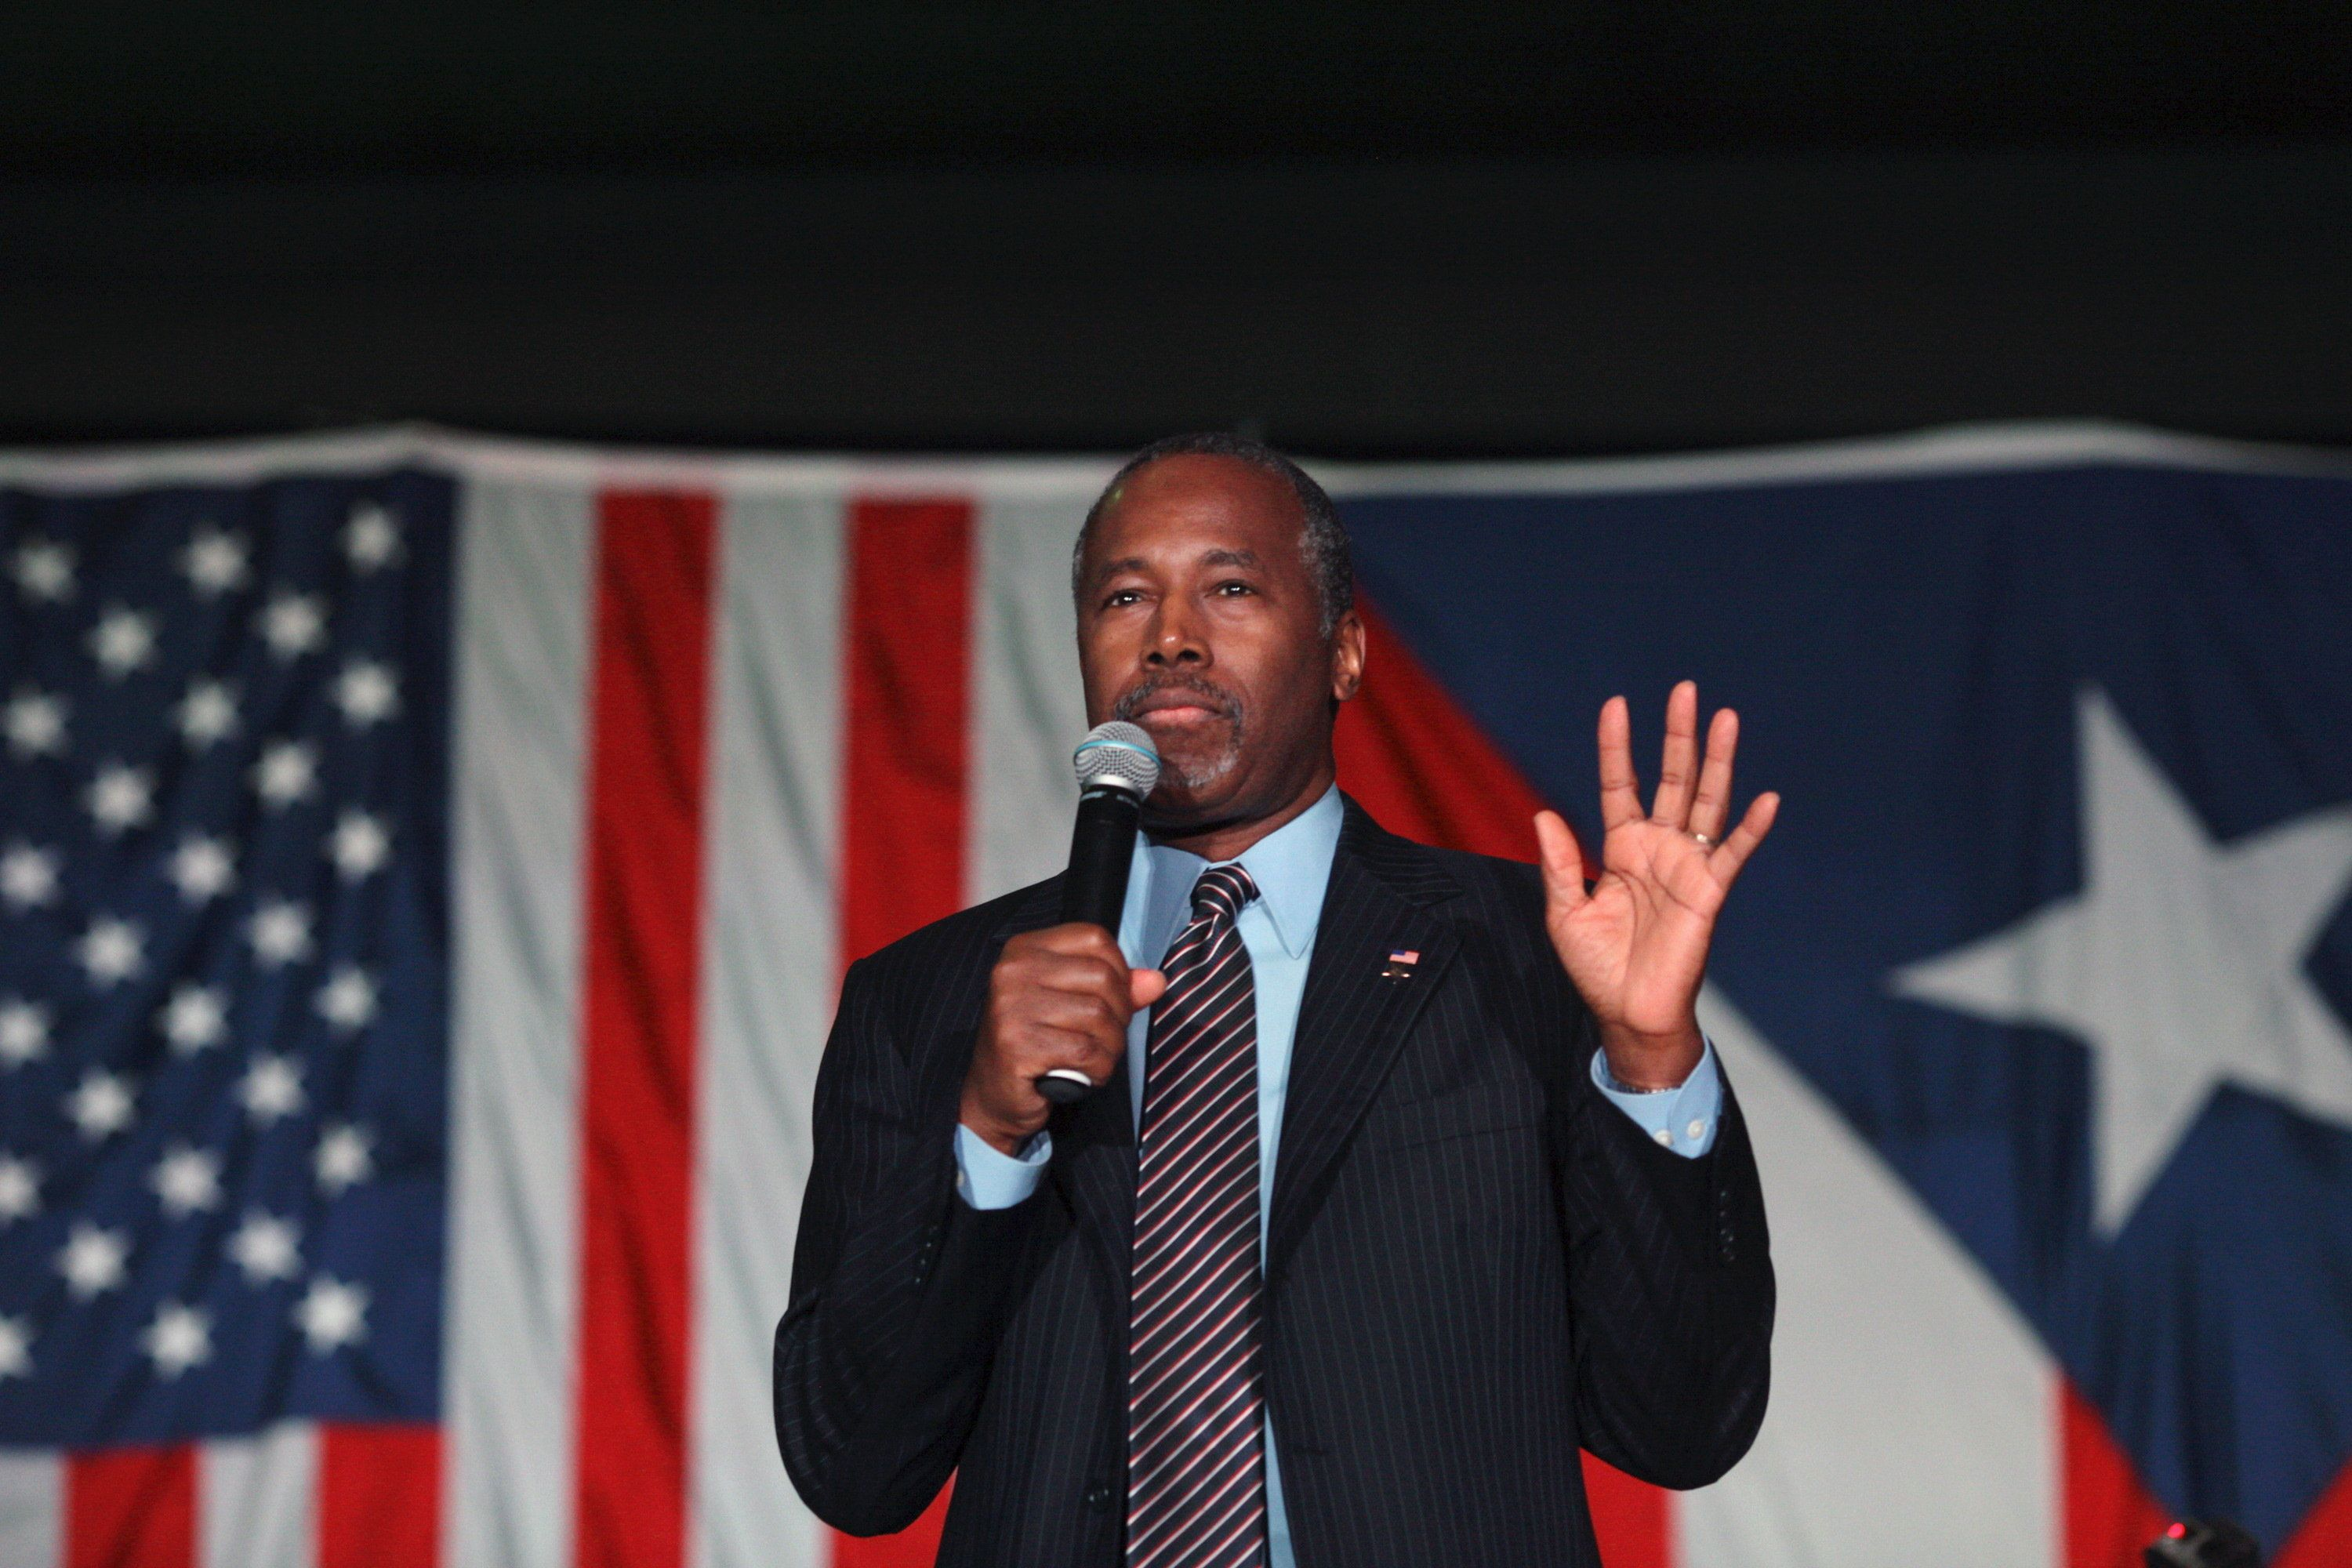 U.S. Republican presidential candidate Ben Carson gives a speech at a 'Building the New Puerto Rico' event in Fajardo, Puerto Rico, November 8, 2015. Carson said he supports Puerto Rico becoming the 51st U.S. state in Fajardo on Sunday. REUTERS/Alvin Baez